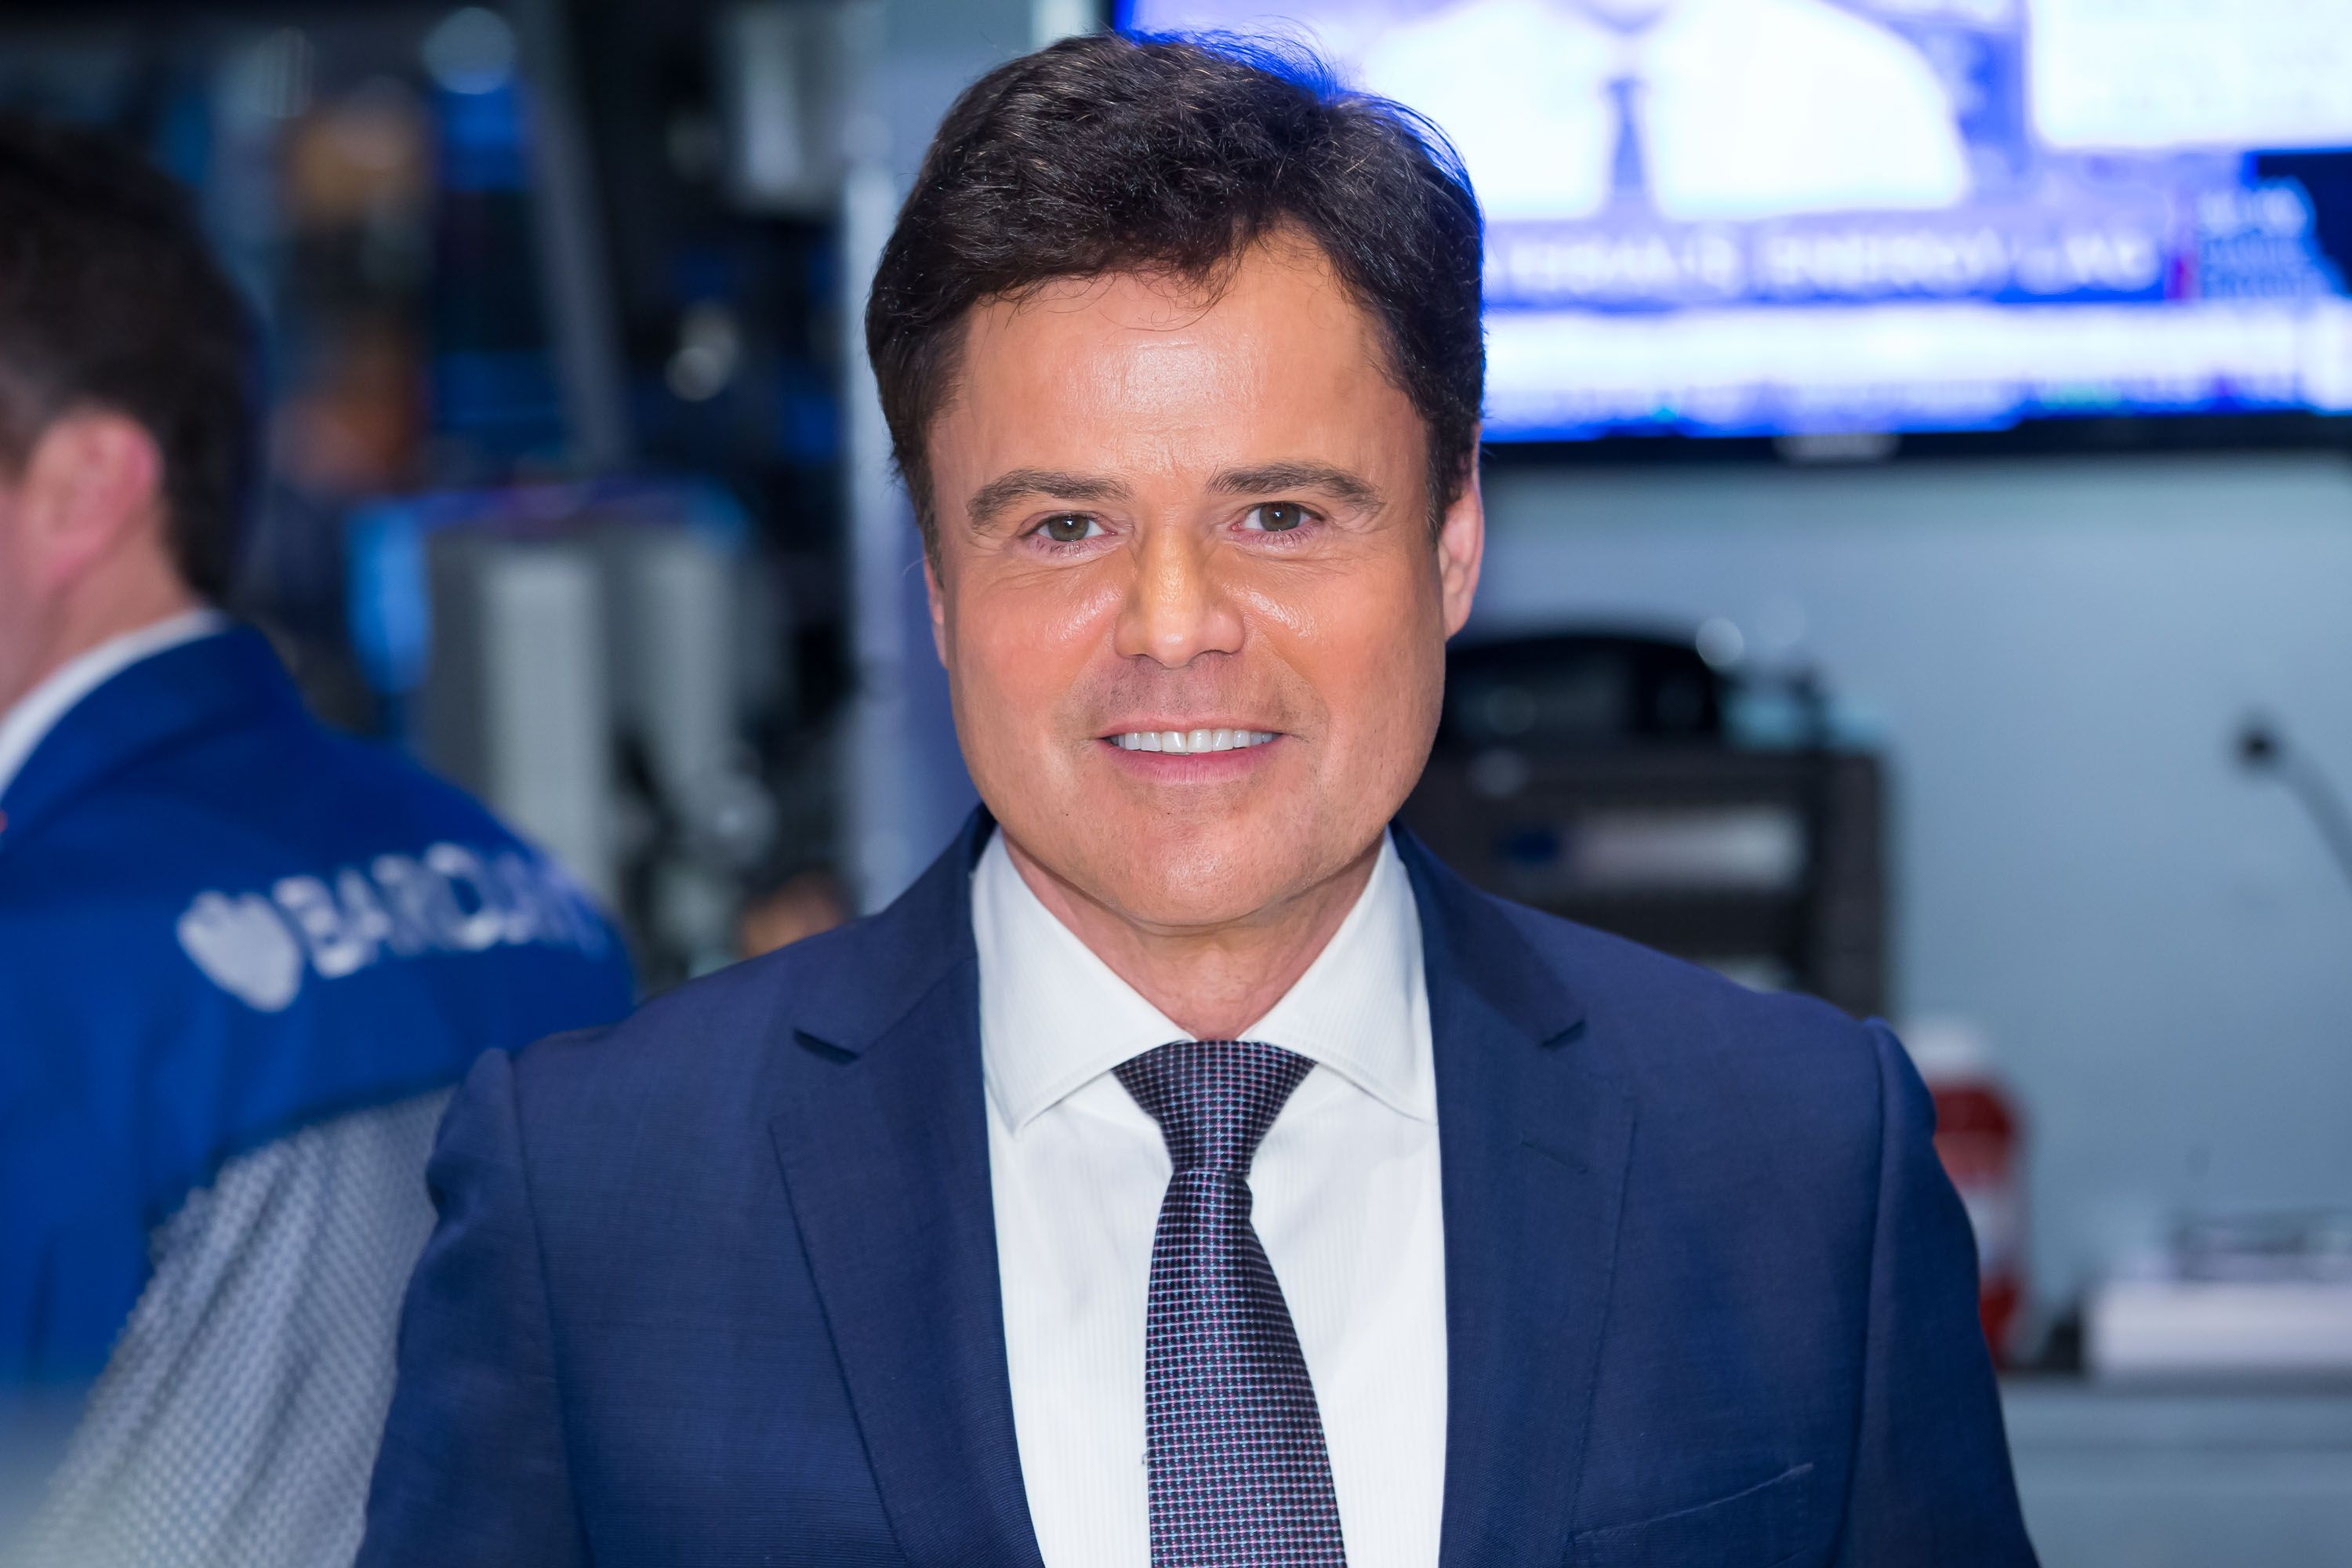 Donny Osmond rings the Closing Bell at New York Stock Exchange on January 13, 2015, in New York City | Photo:Ben Hider/Getty Images